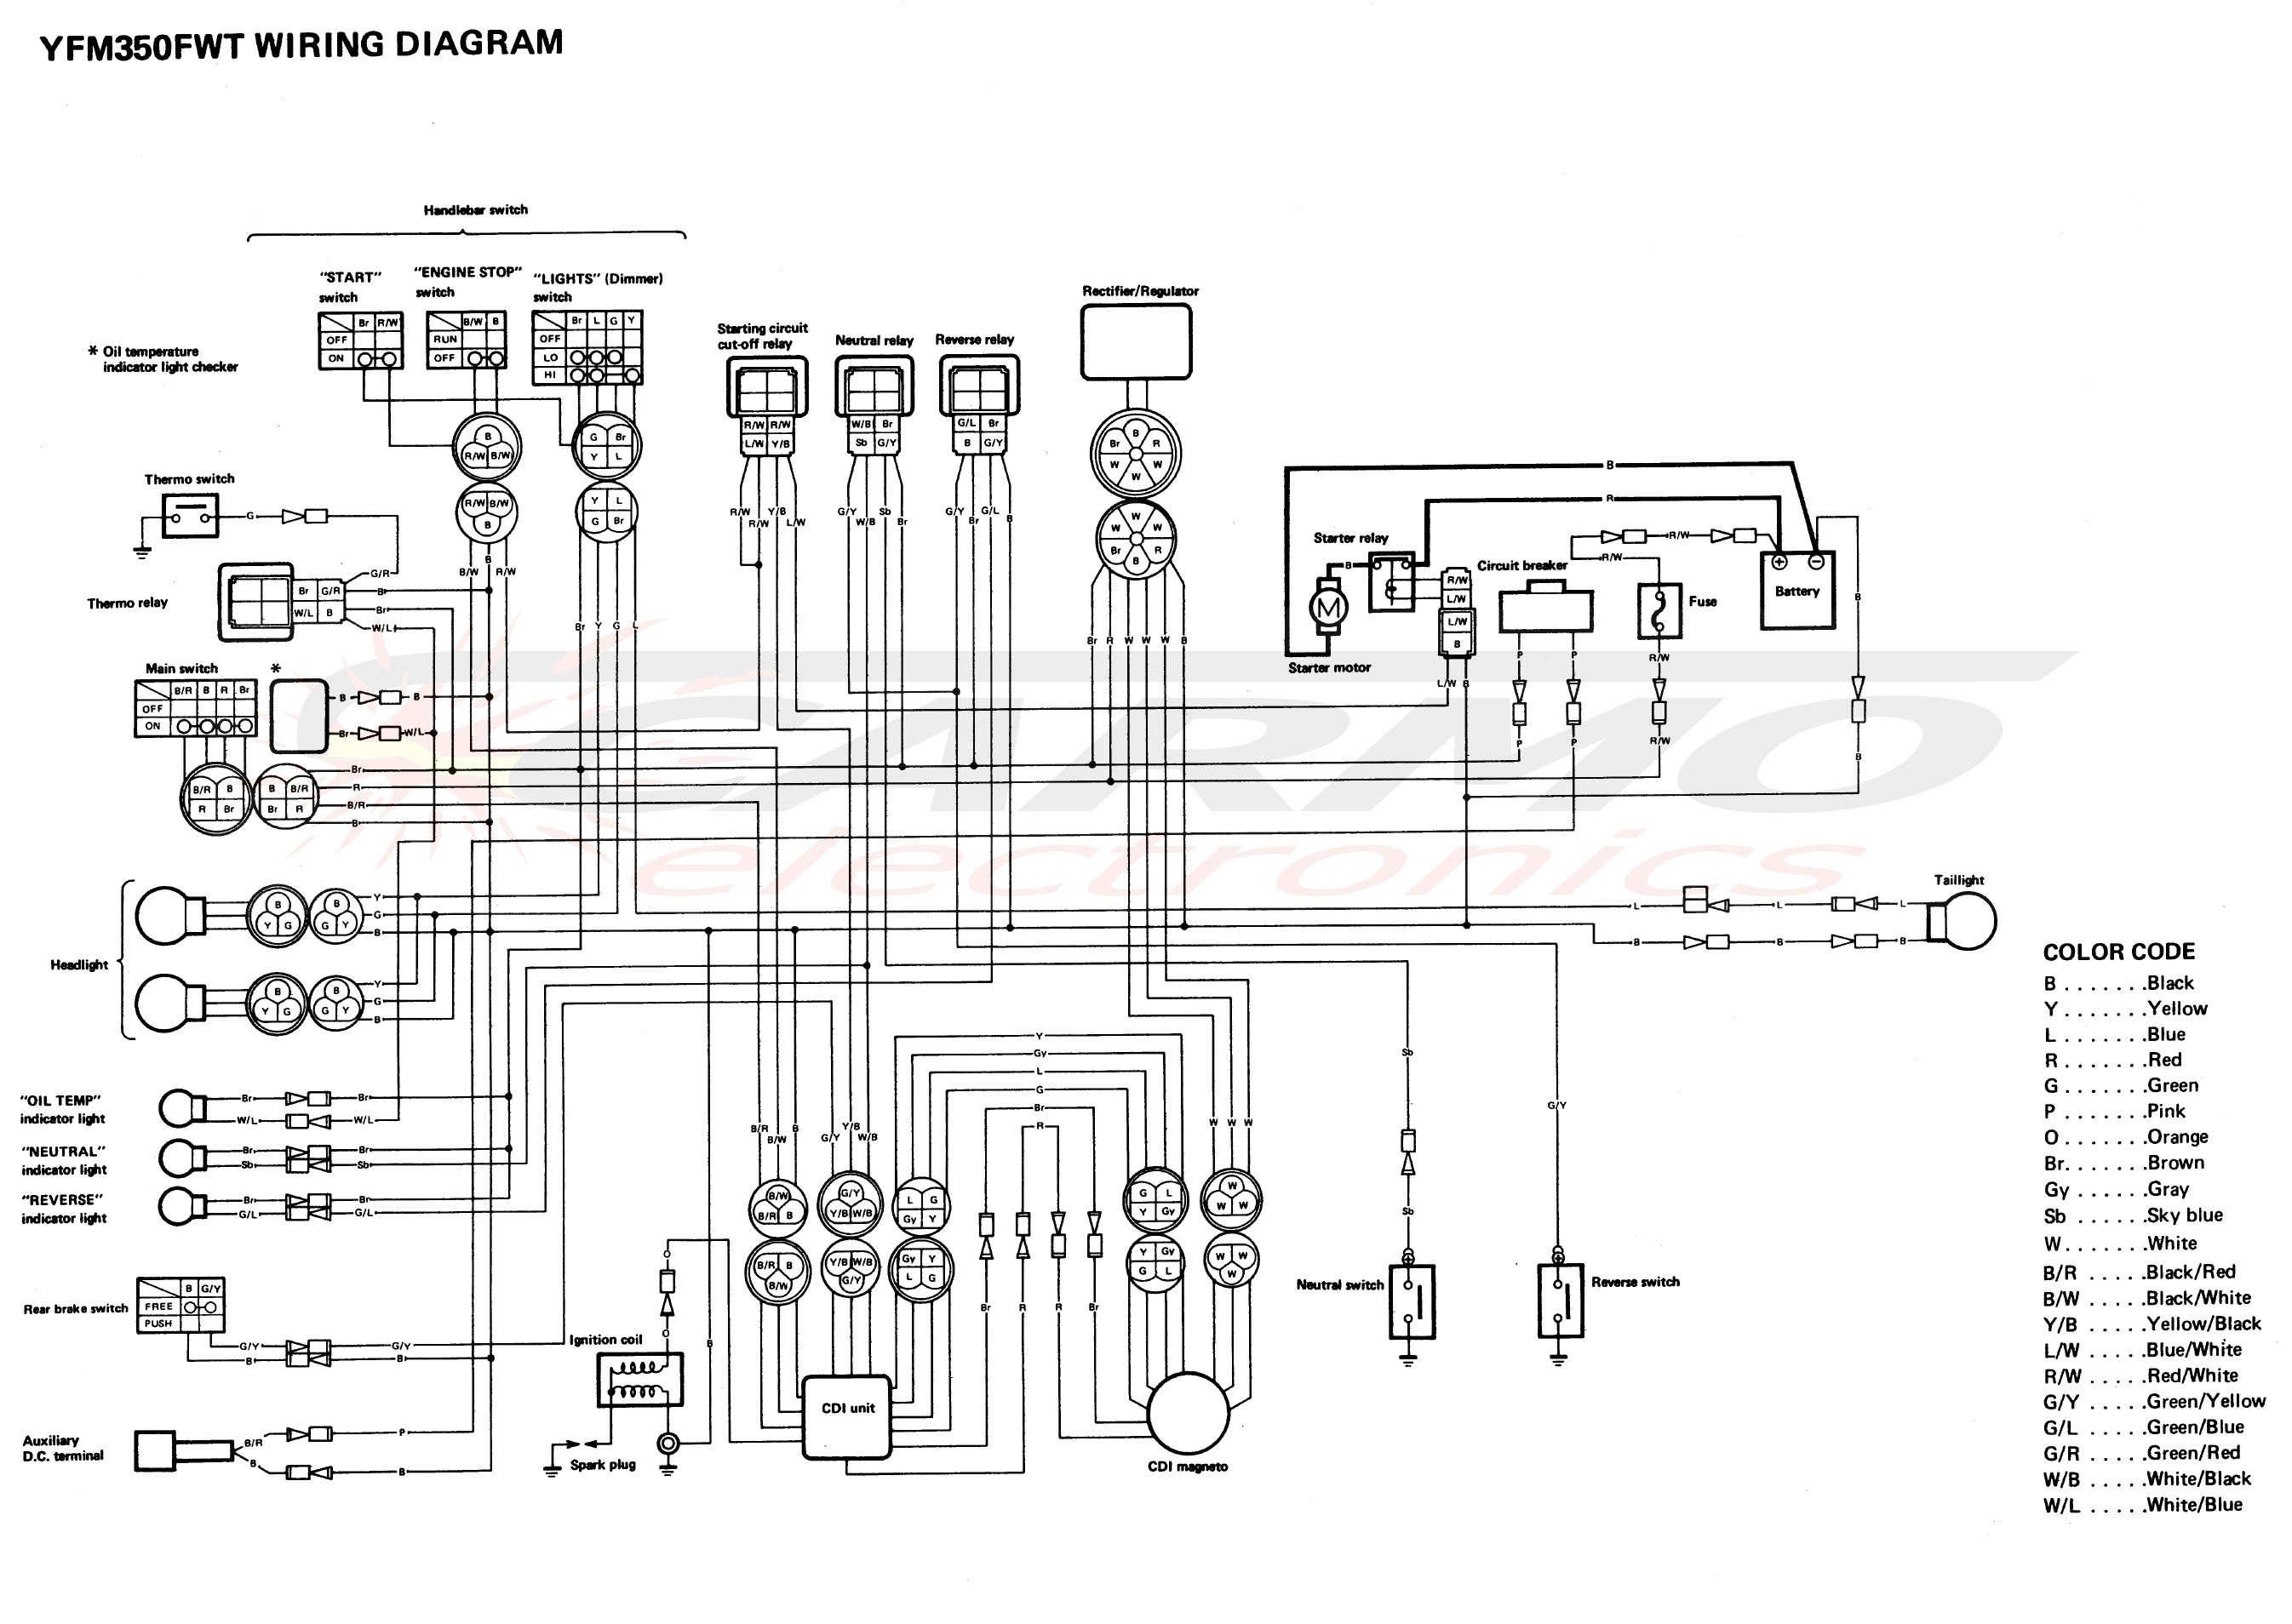 Yamaha Yfm350 Engine Wiring Diagram : 35 Wiring Diagram